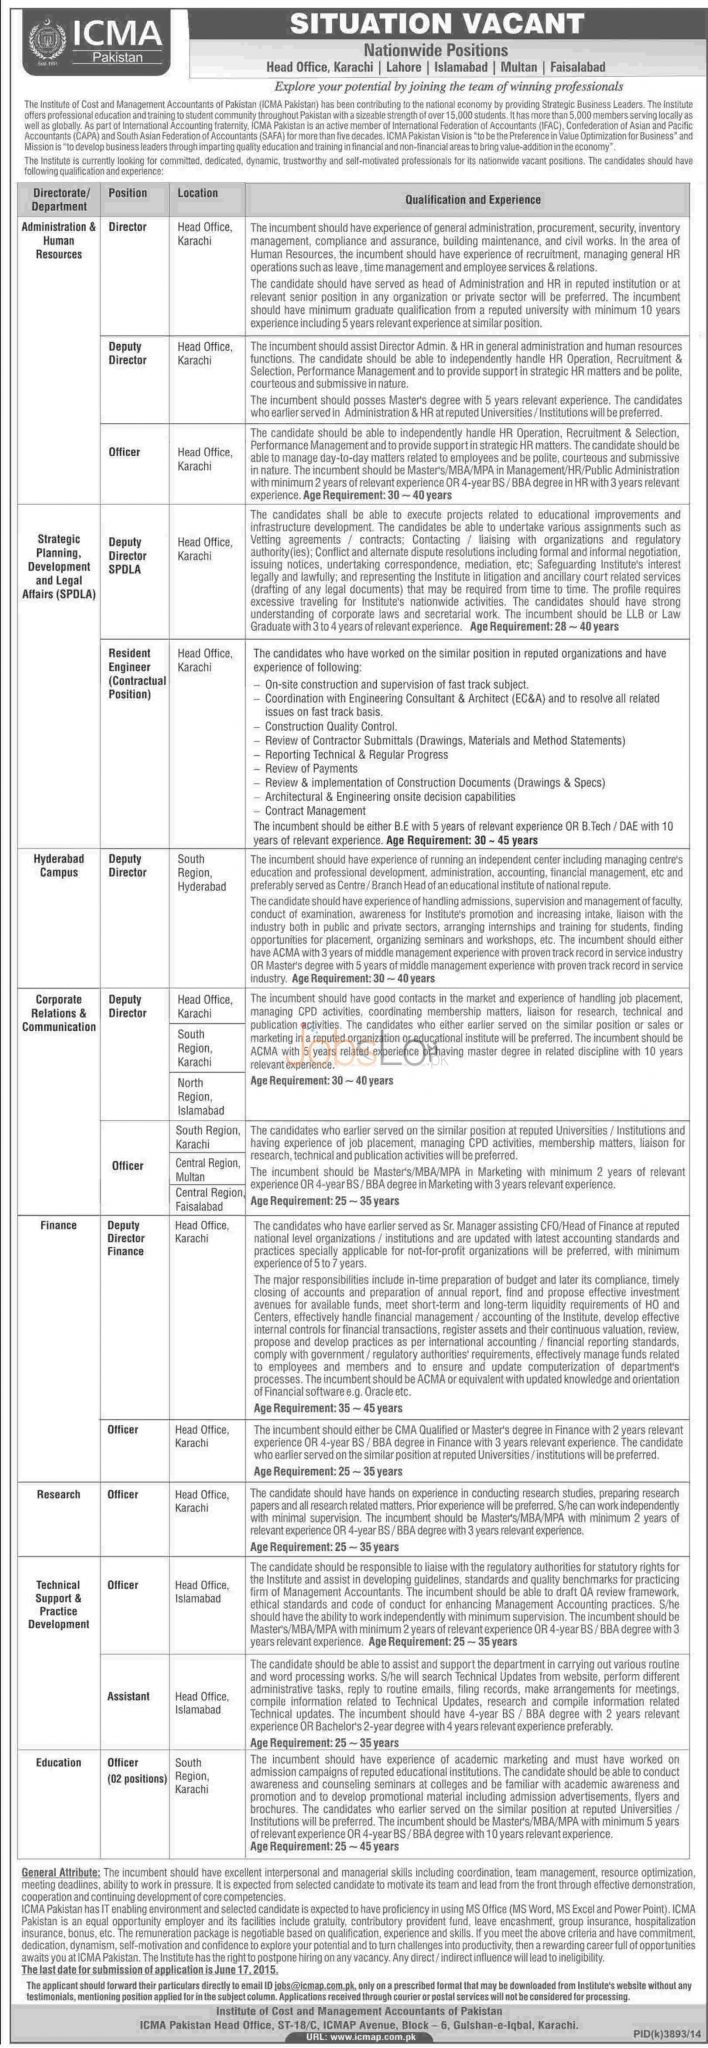 Institute of Cost and Management Accountants ICMA Pakistan Jobs 2015